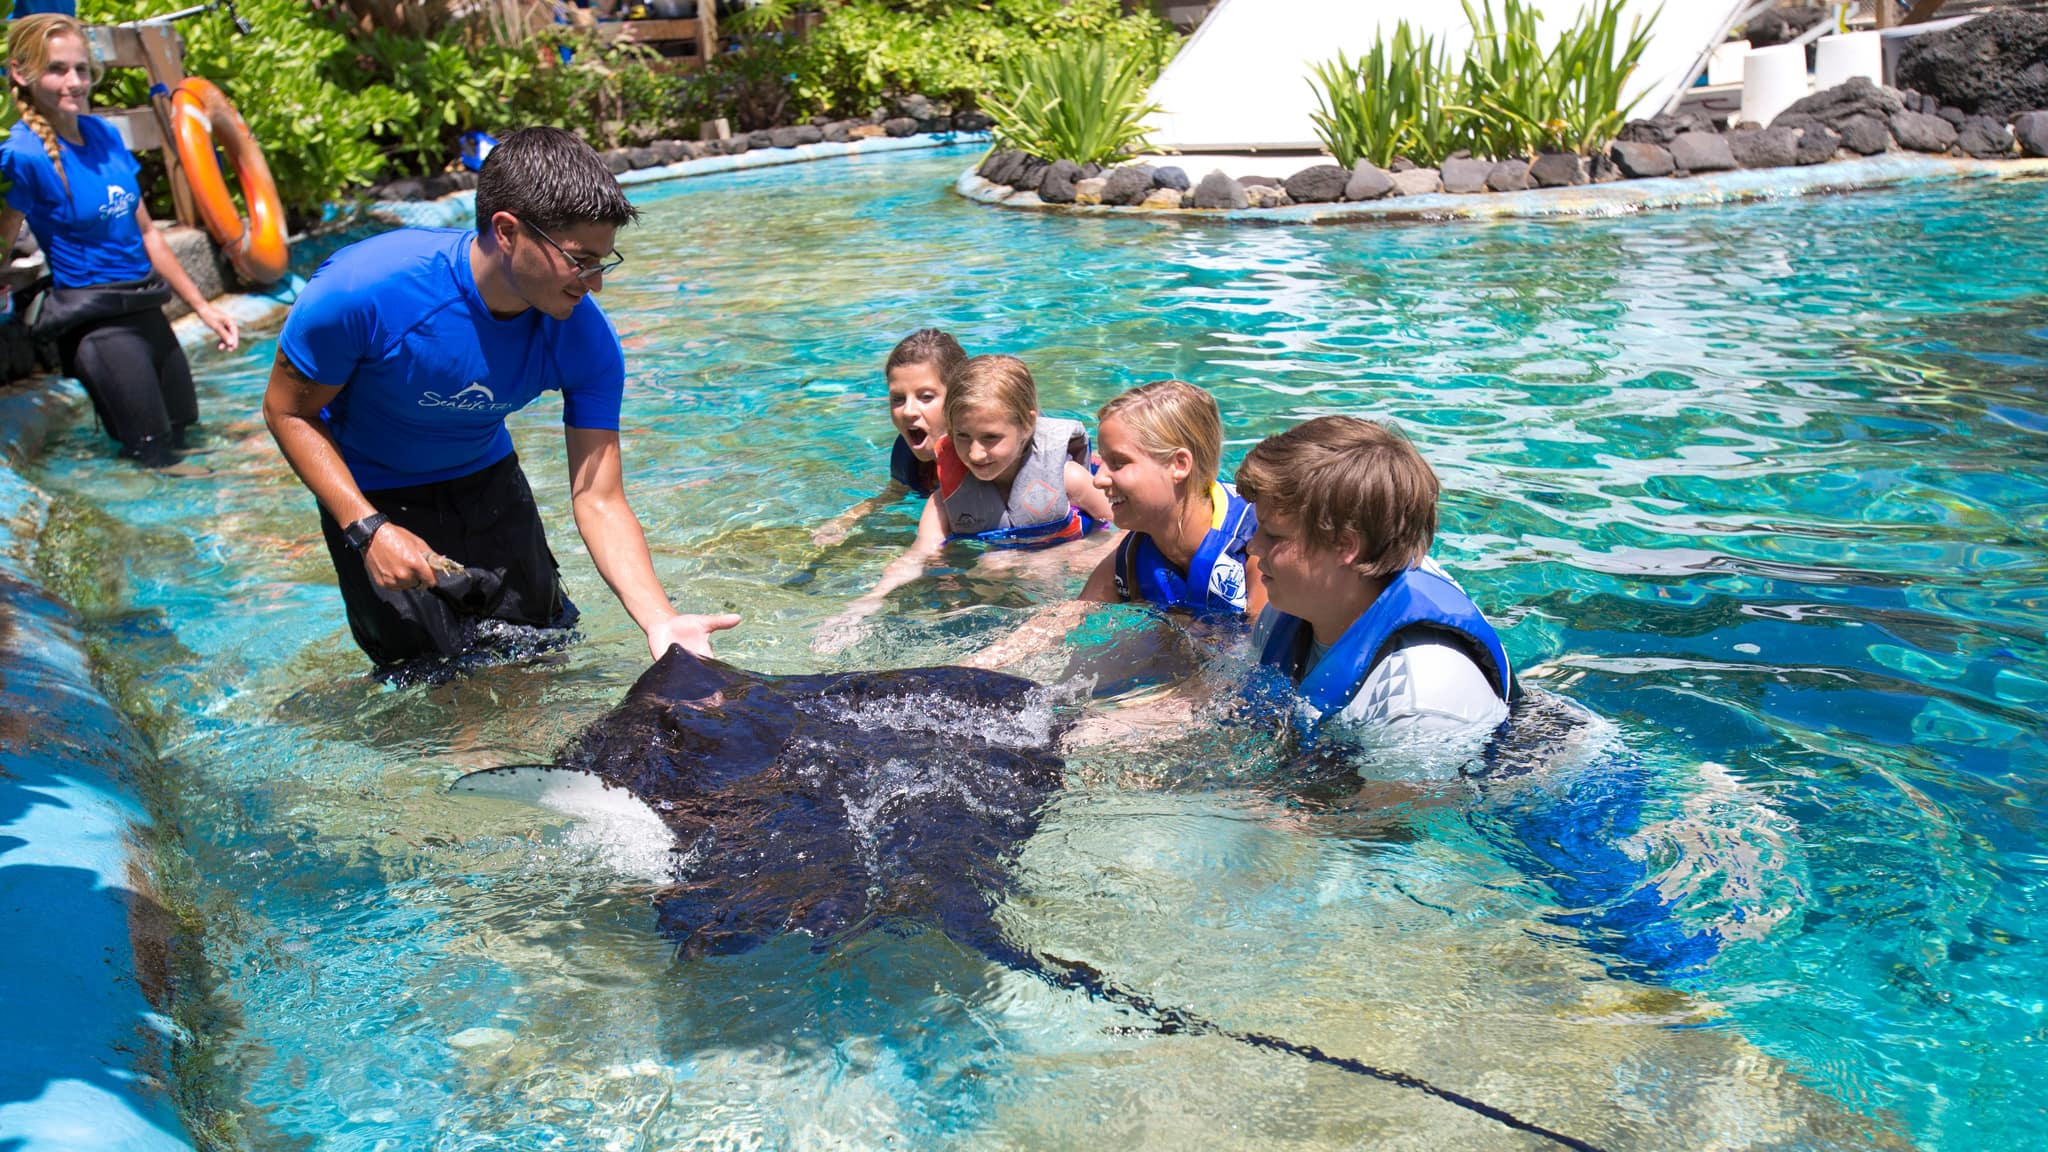 In a pool at a marine park, 4 kids look on as a guide interacts with a manta ray